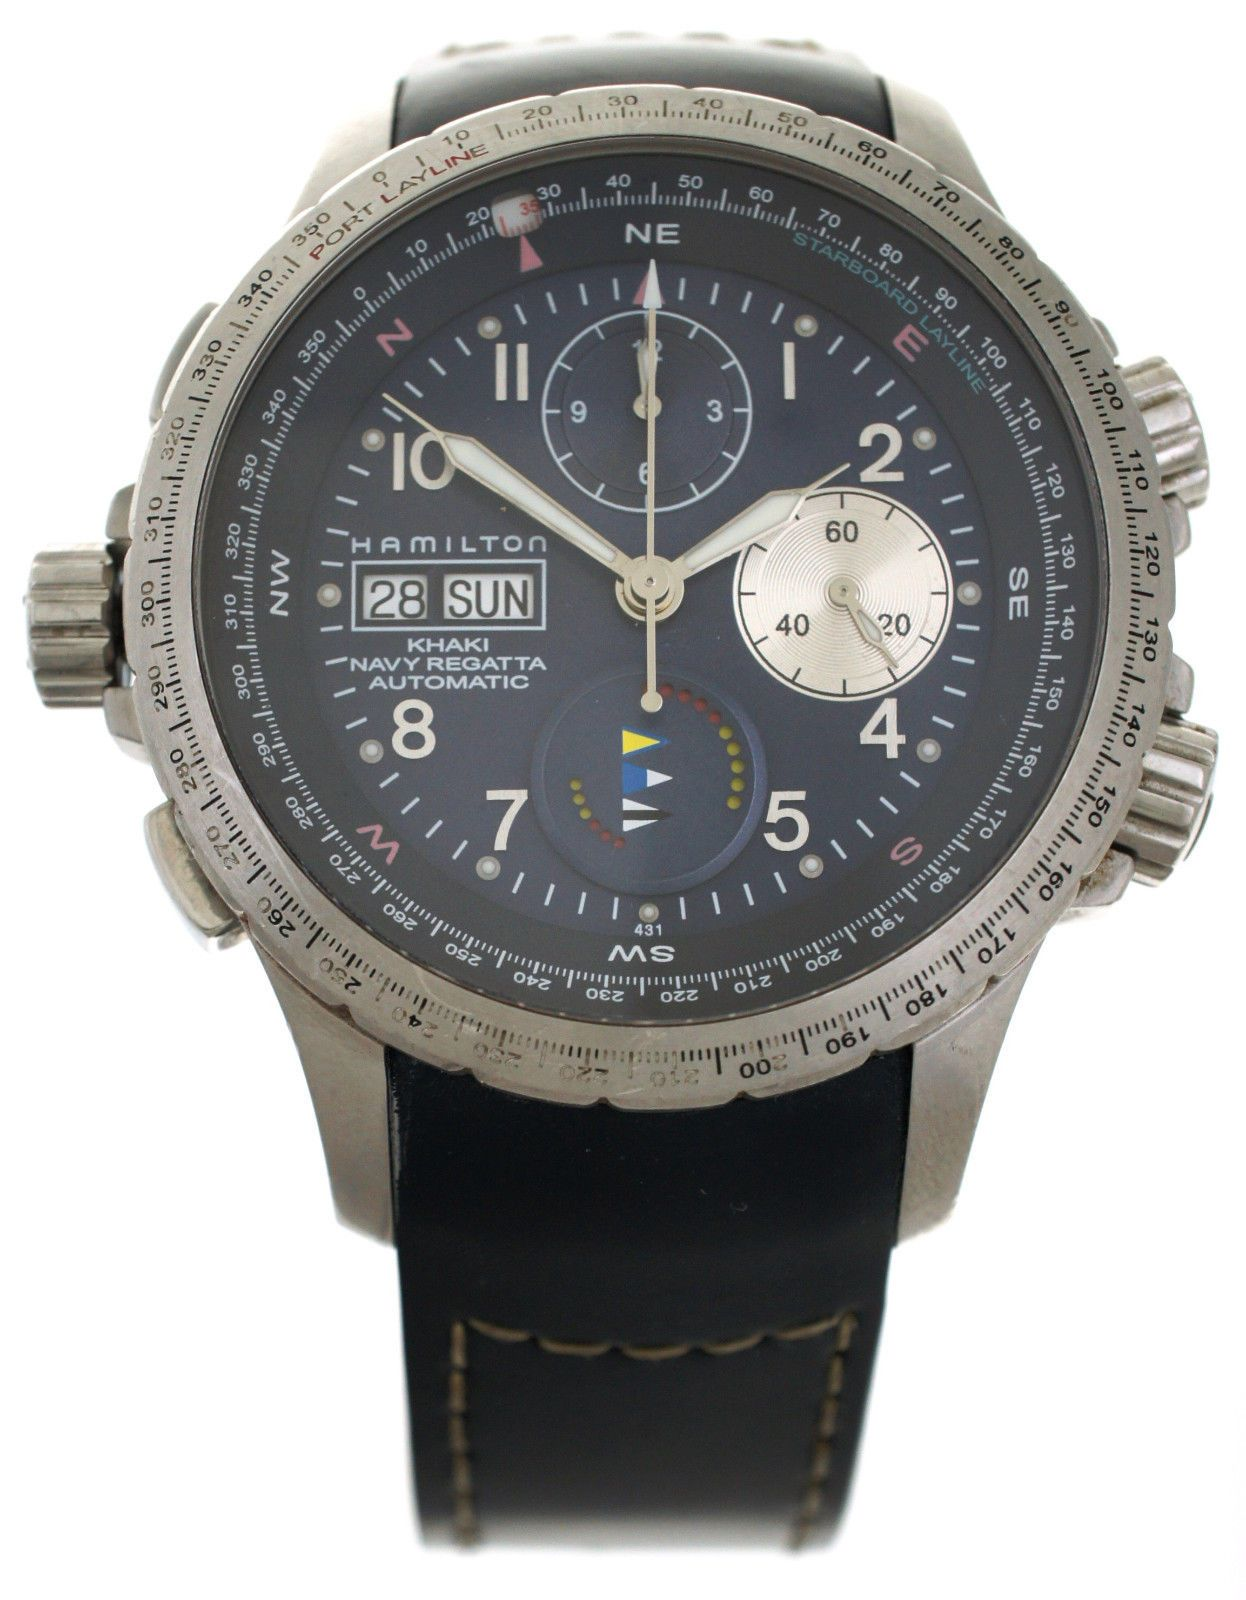 Hamilton Khaki Navy Regatta Auto Day Date Watch Chronograph H776360 H77636143 For Sale Online Hamilton Khaki Navy Automatic Watches For Men Mens Watches Black